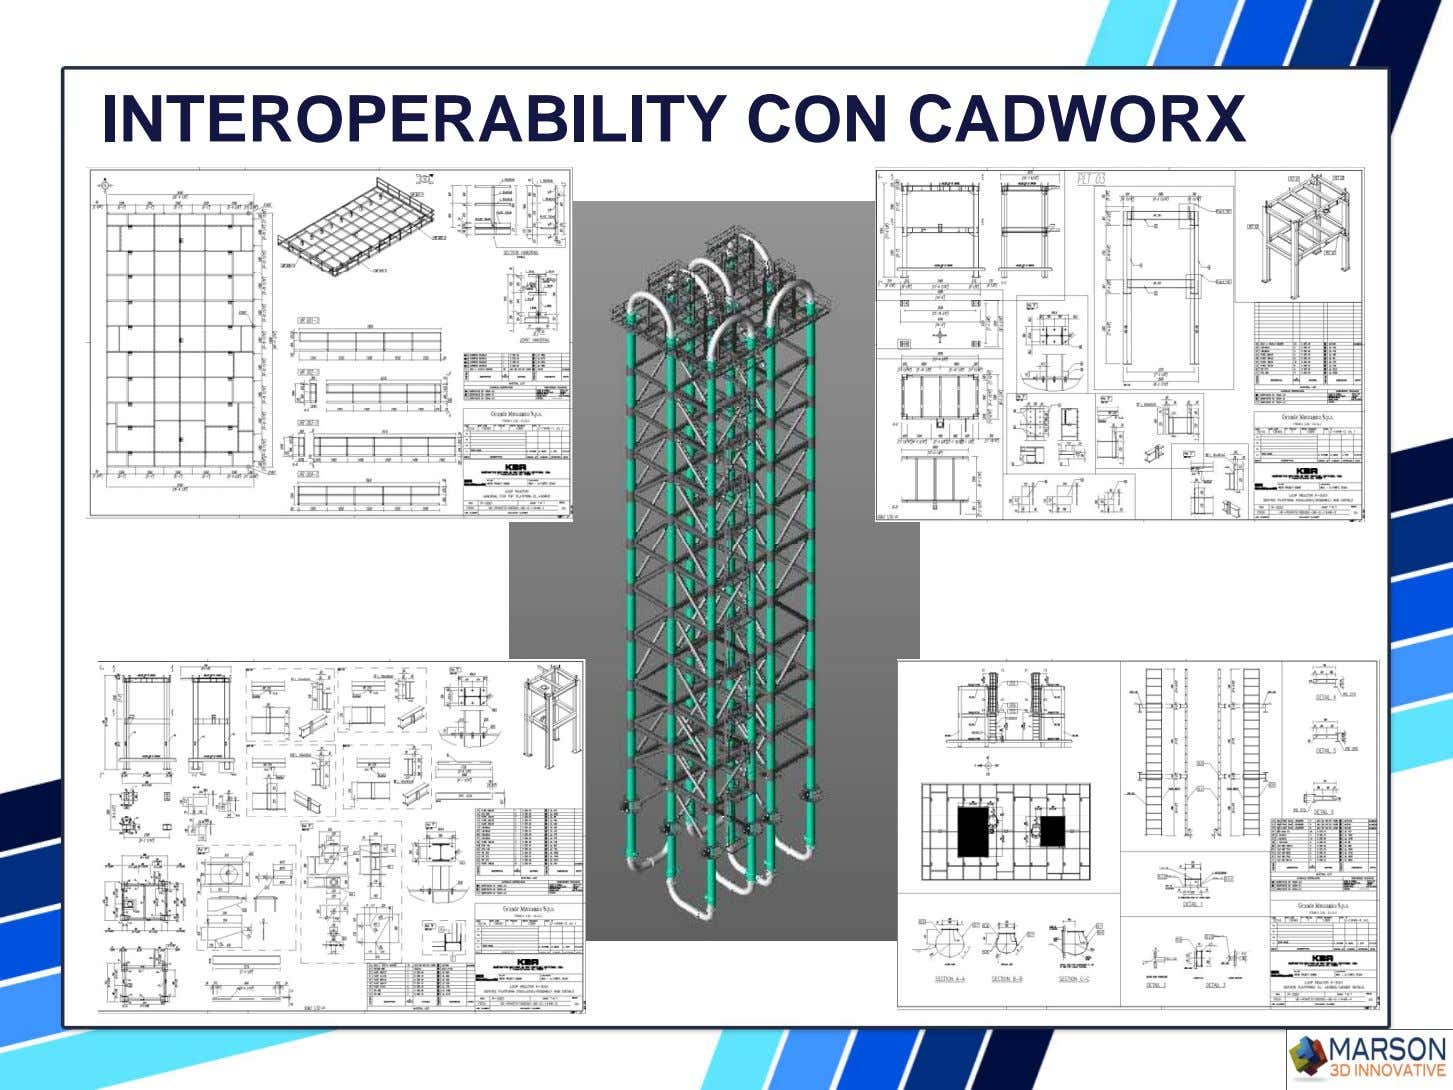 INTEROPERABILITY CON CADWORX